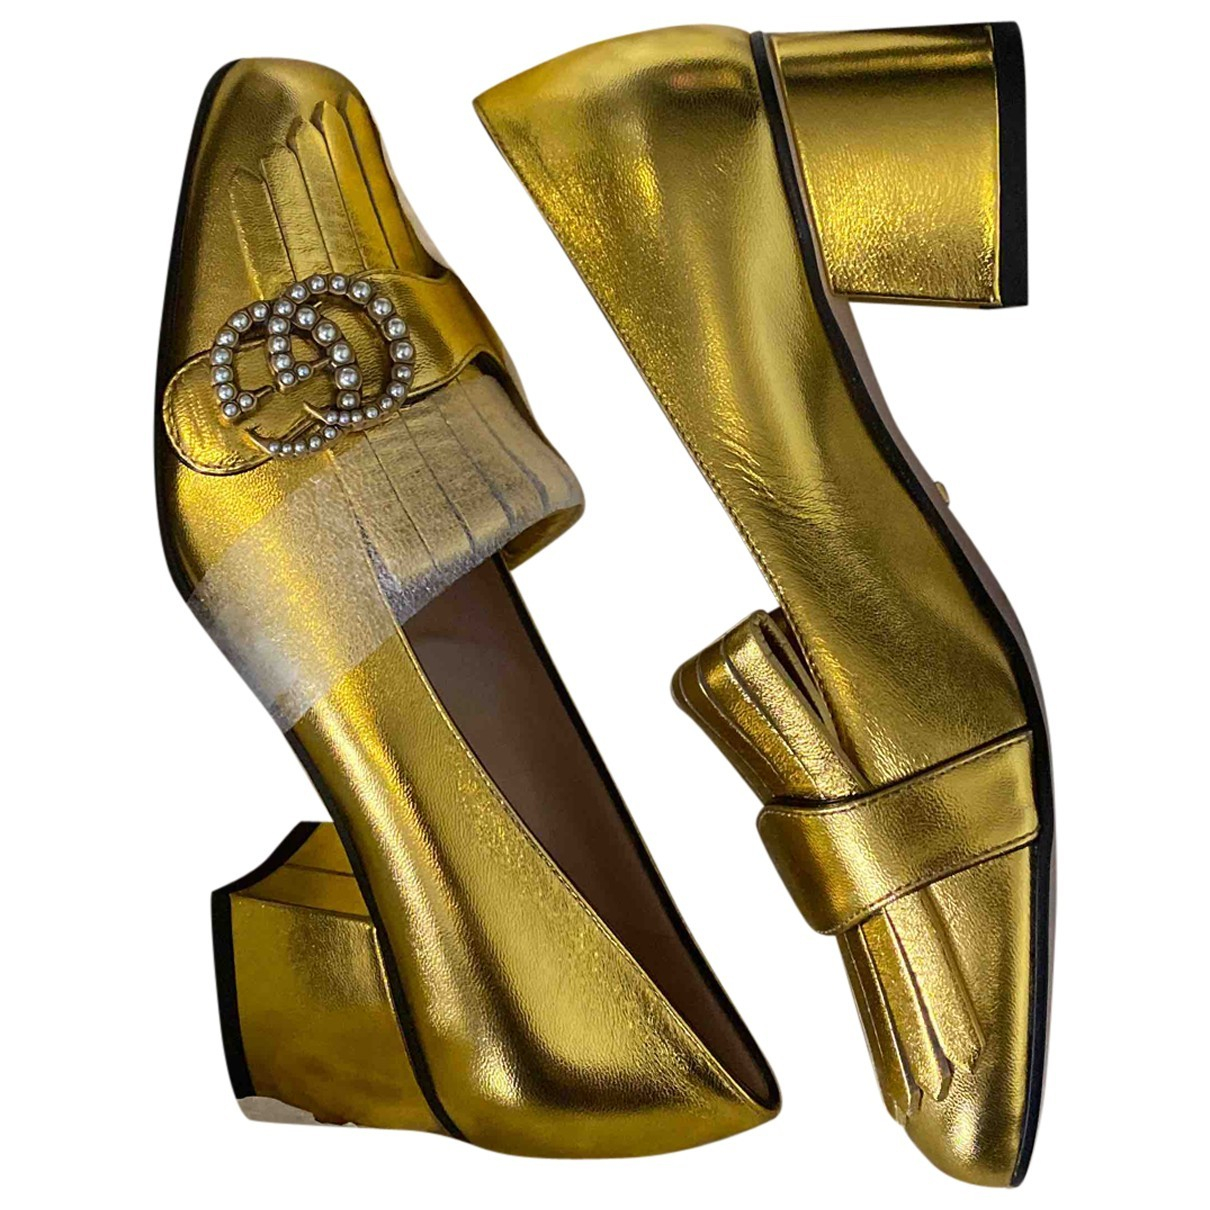 Gucci Marmont Gold Leather Heels for Women 36 EU